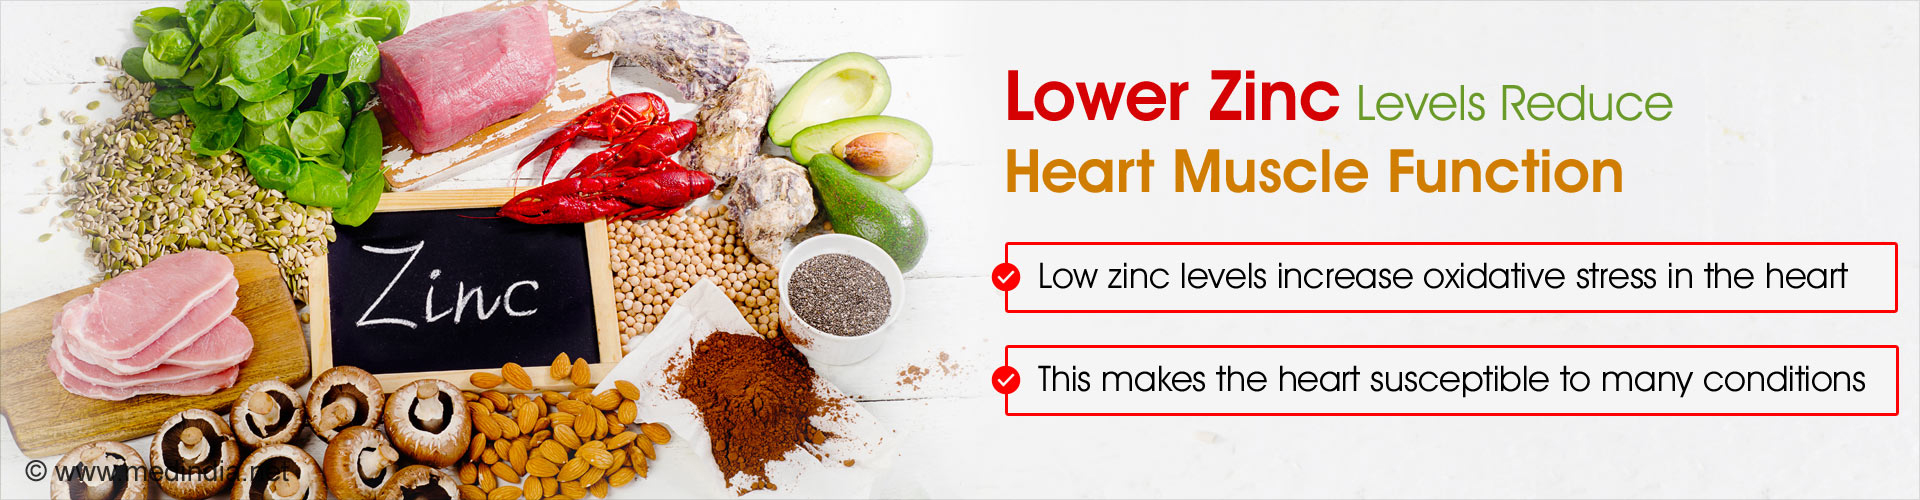 Lower zinc levels reduces heart muscle function - Low zinc levels increase oxidative stress in the heart - This makes the heart susceptible to many conditions